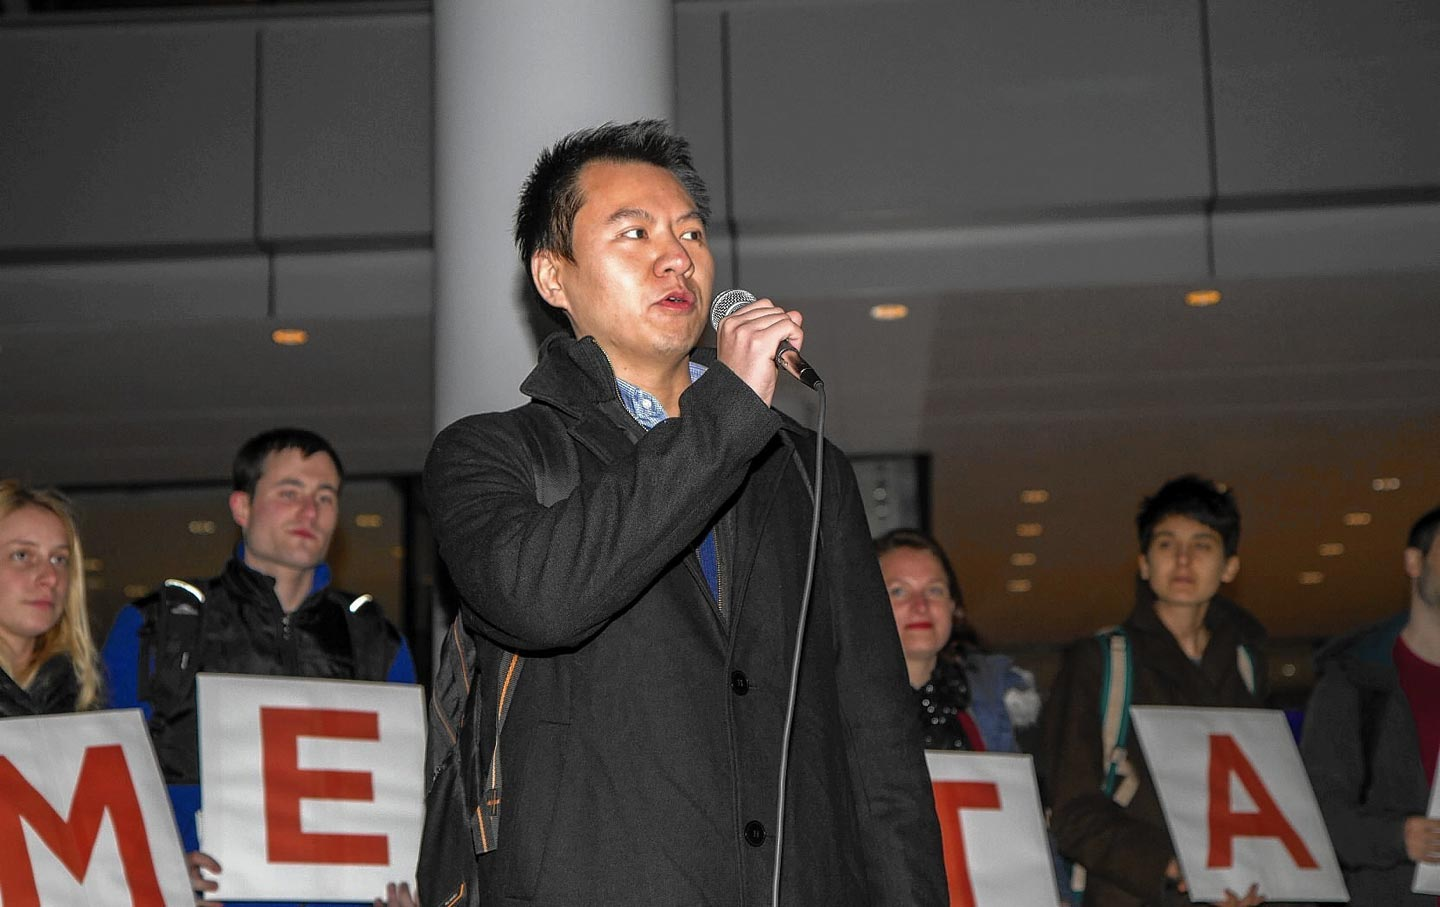 Graduate workers and supporters rally around Grant Mao at Yale University, December 8, 2015.